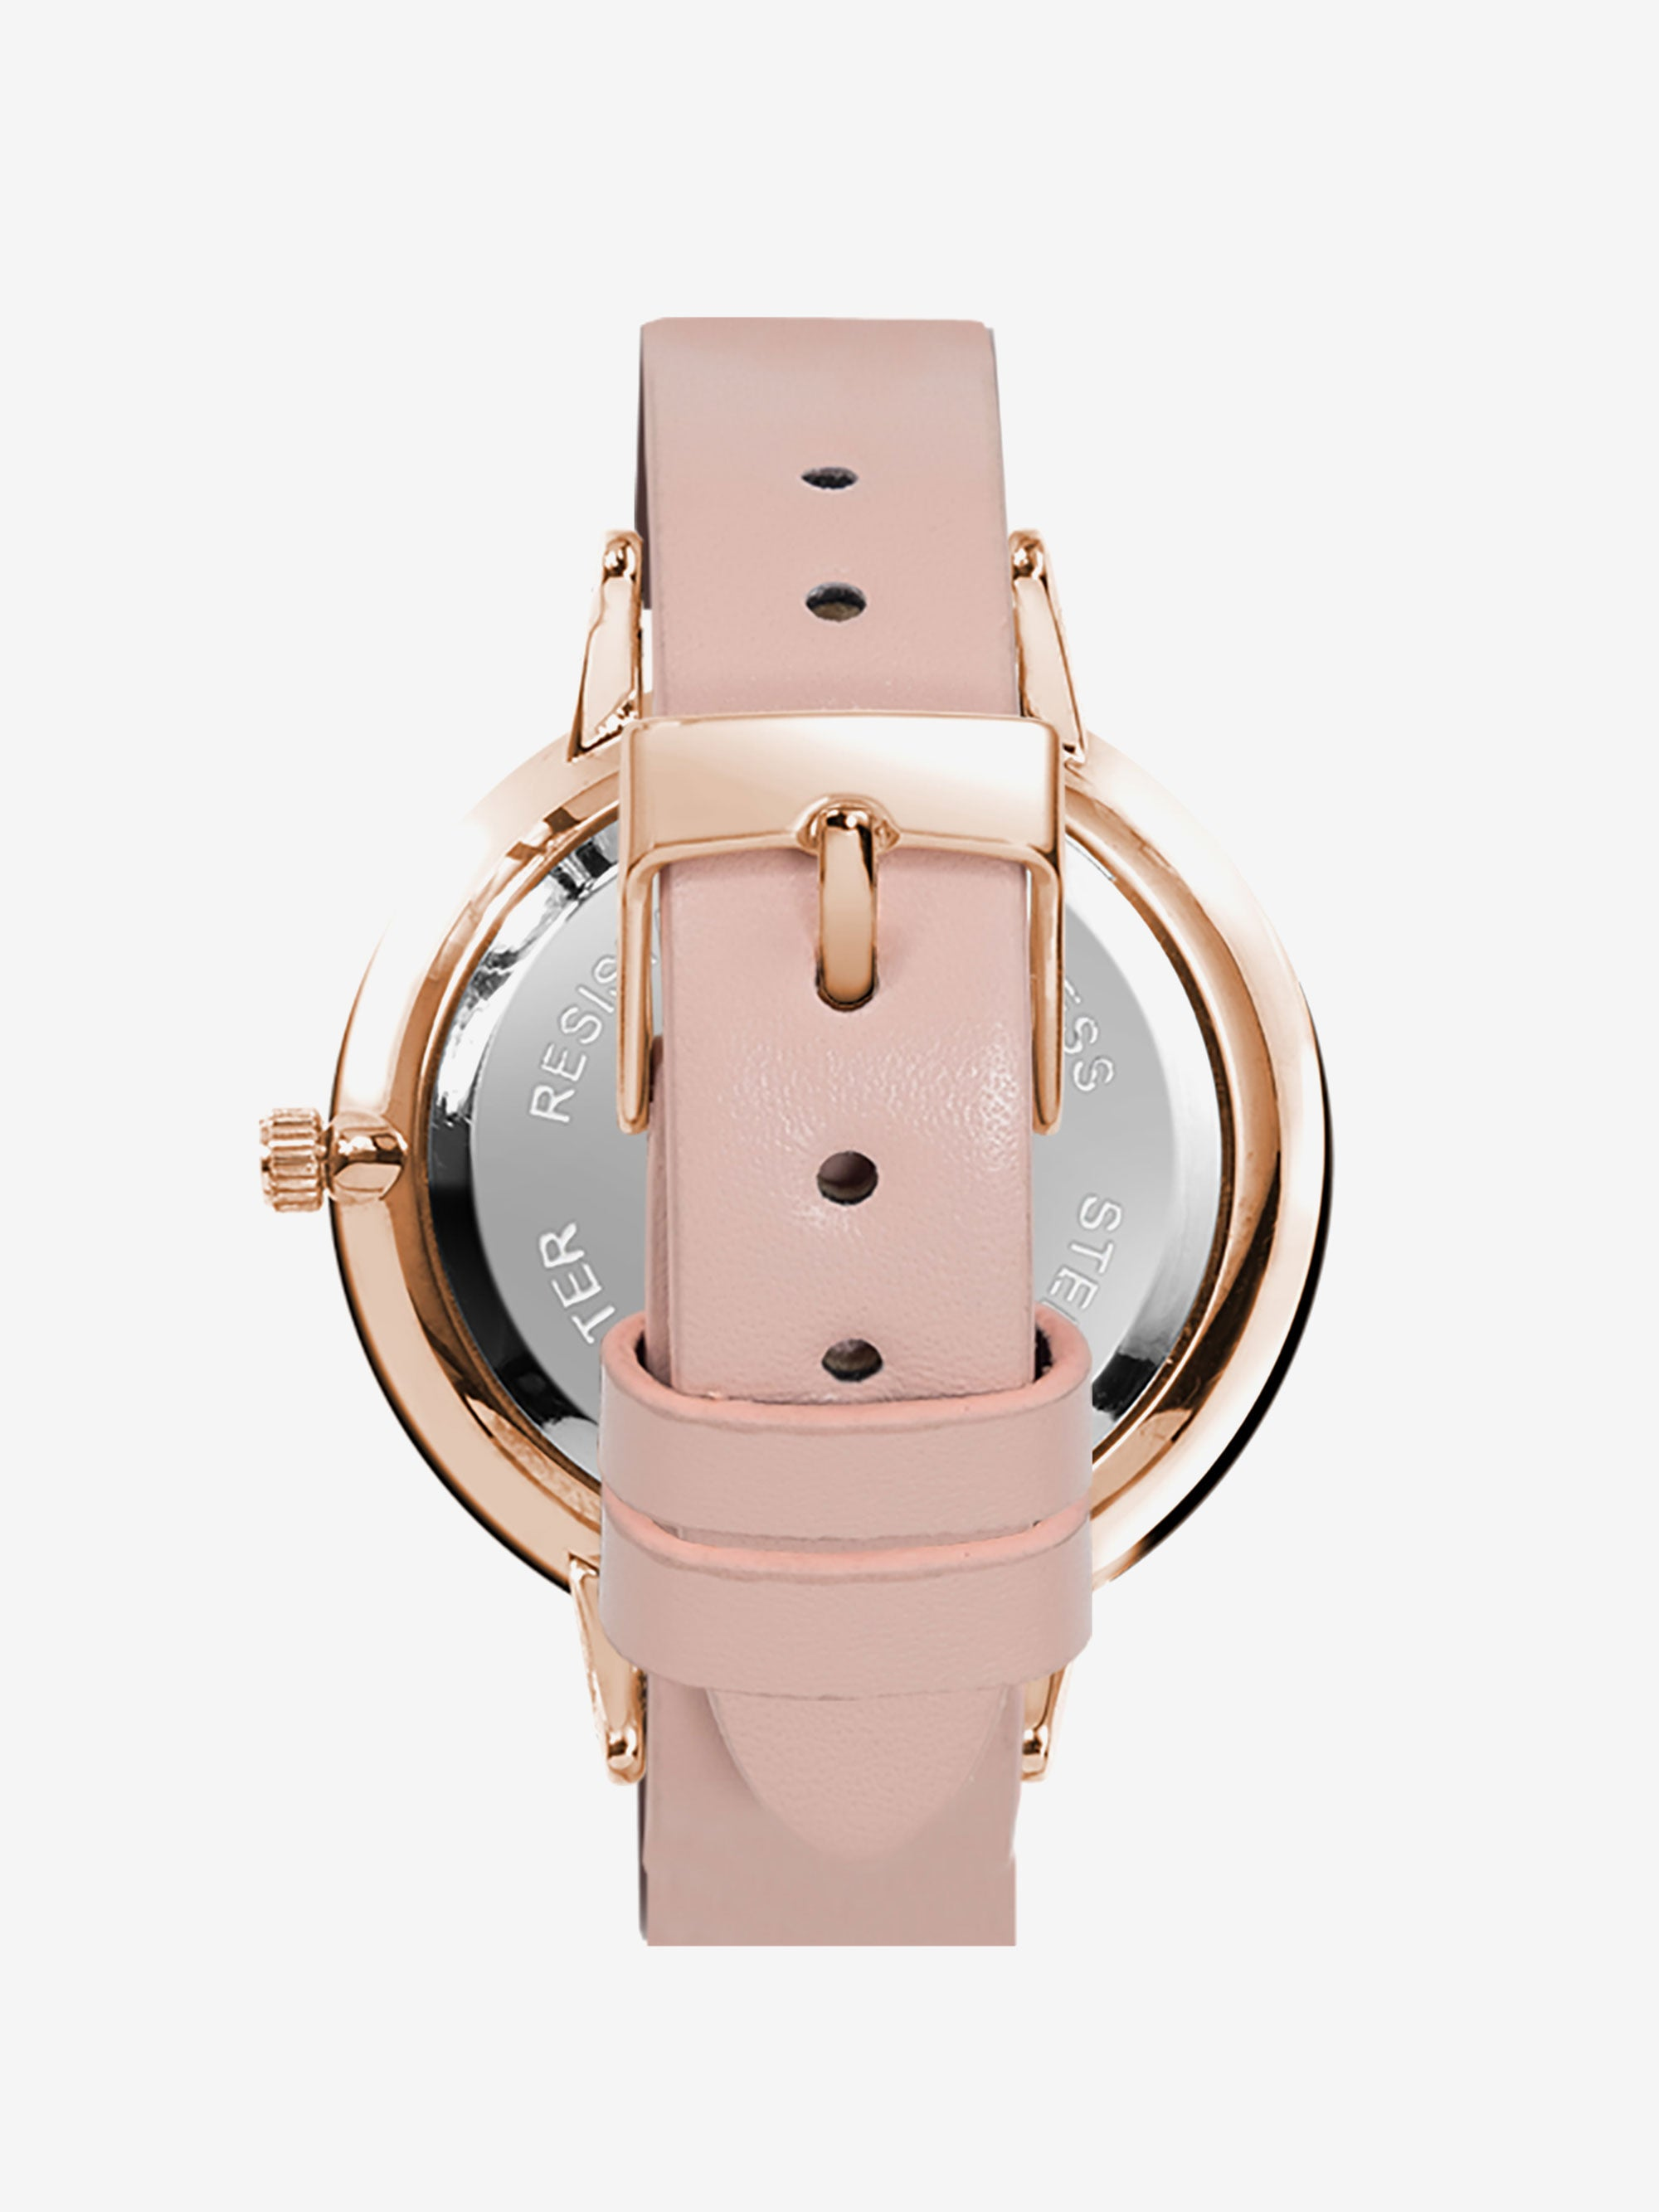 Gladys Classic in Rose Gold